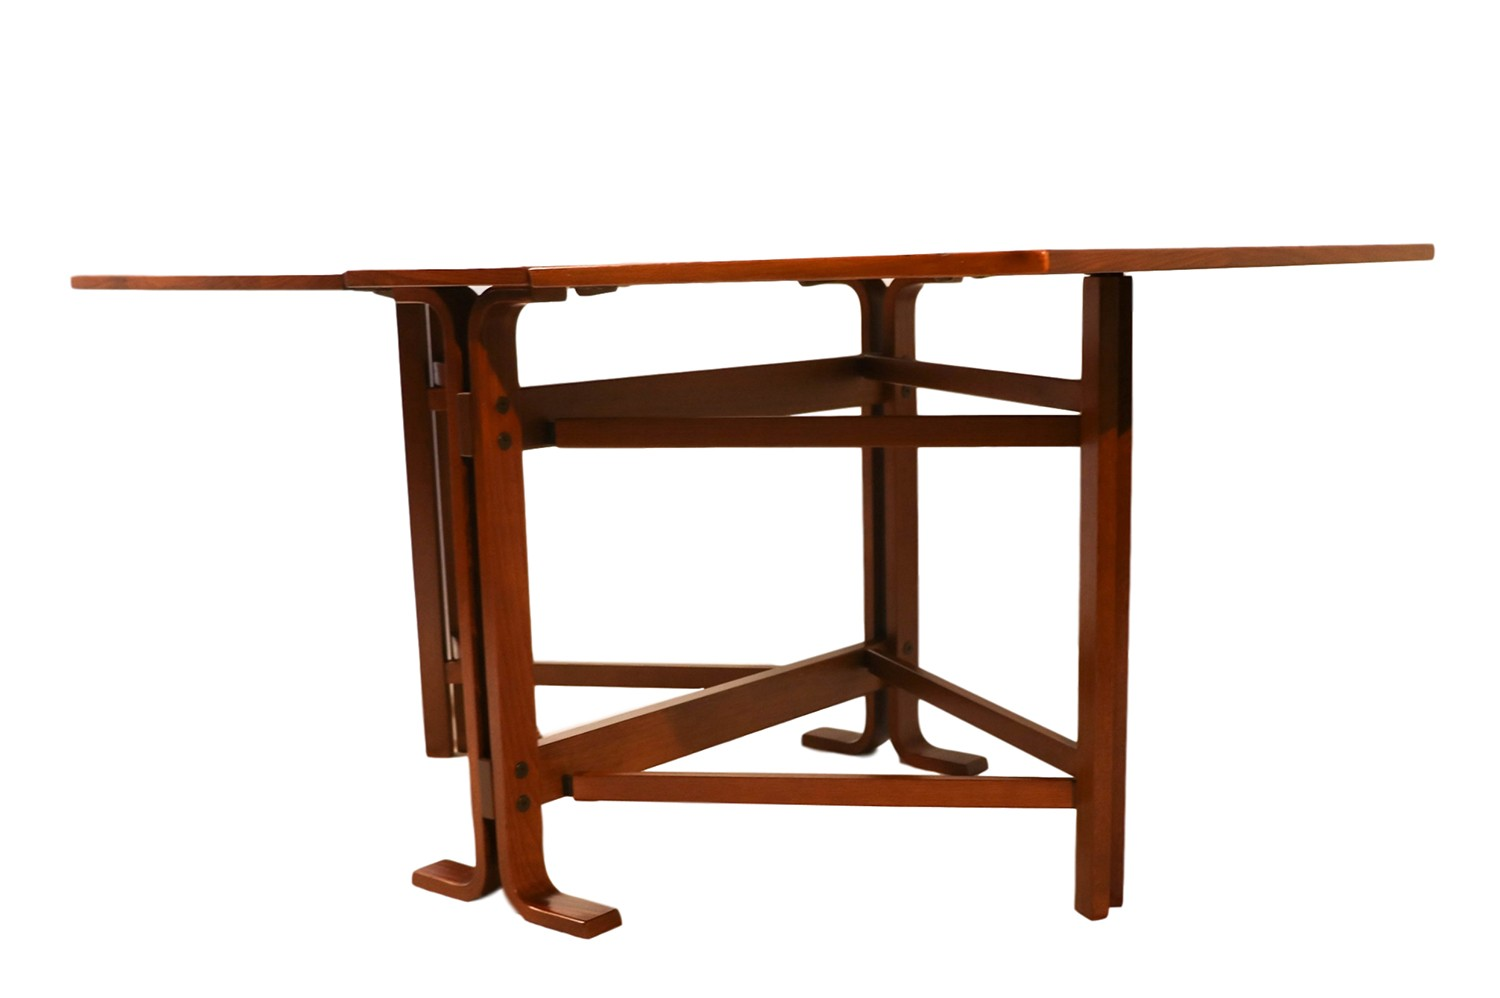 Danish drop leaf teak dining table bruno mathsson style for Drop leaf dining table